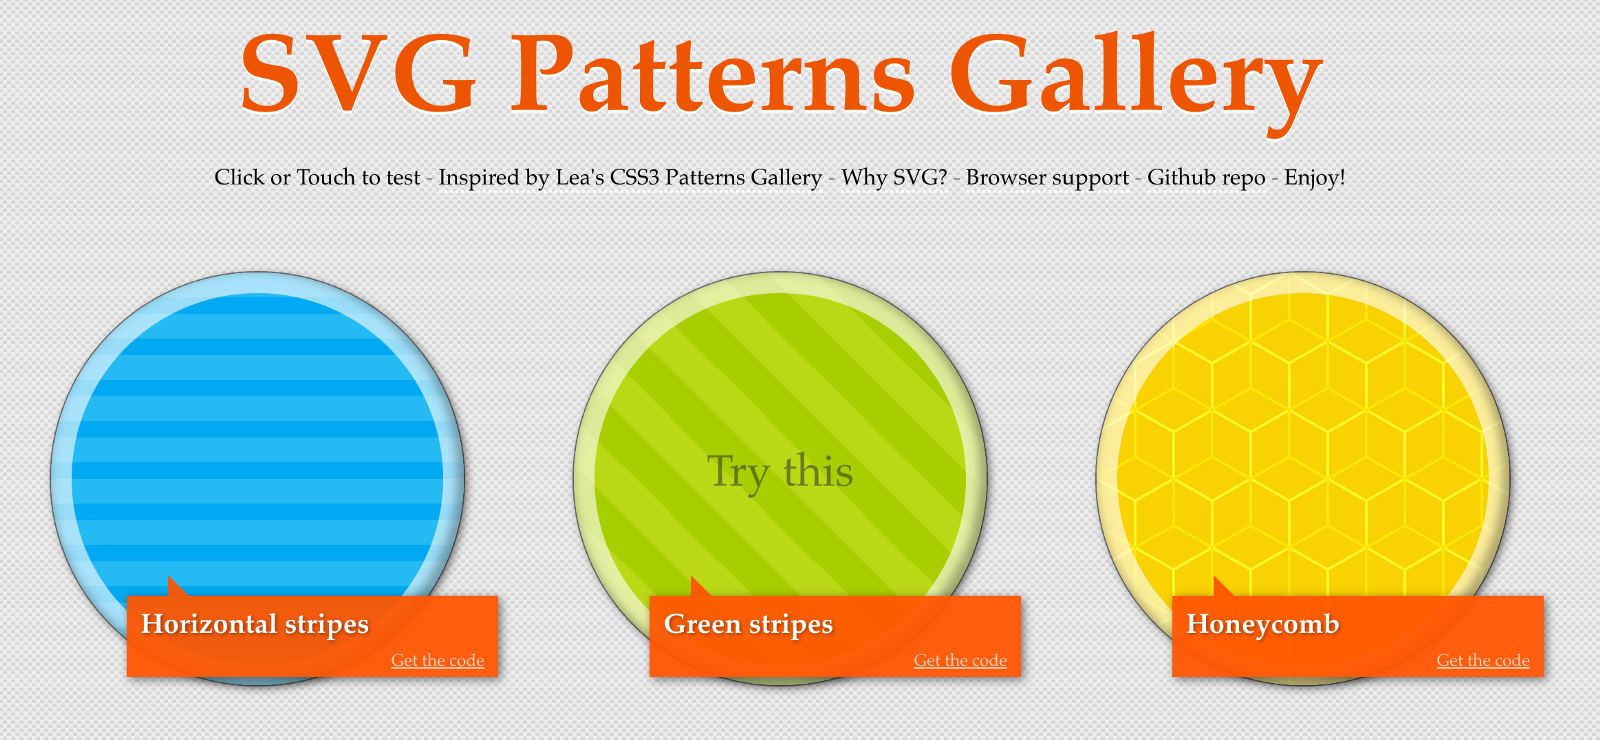 Rendering svgs as images directly in react ian sinnott medium i was already using react with some svg so this was the obvious choice i started searching for tiled svgs and came across this svg pattern gallery malvernweather Images